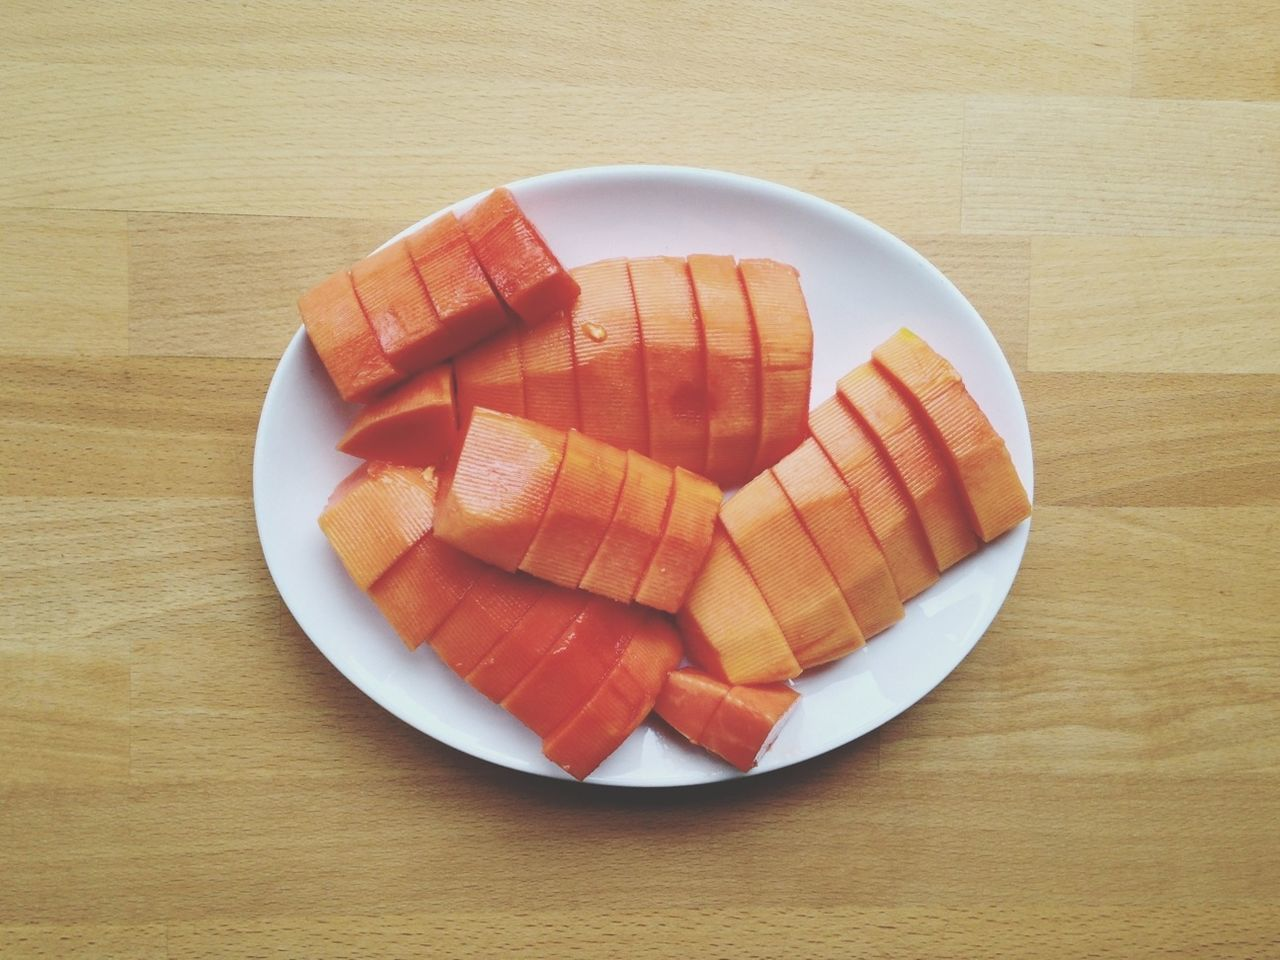 High angle view of papaya slices in plate on table